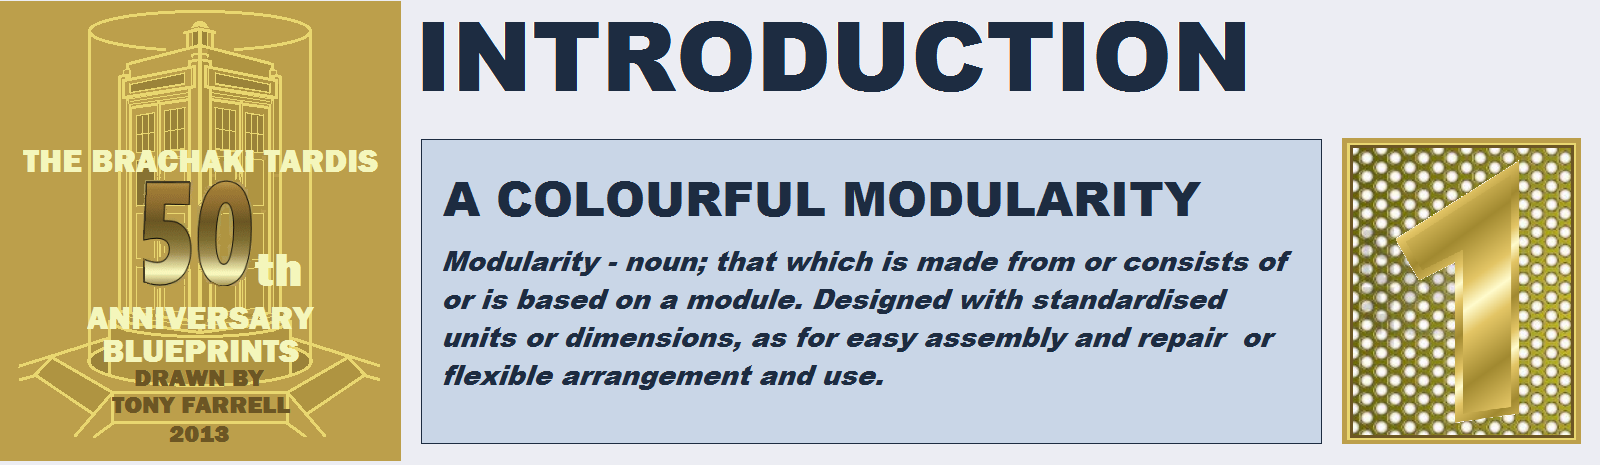 colourful modularity.png